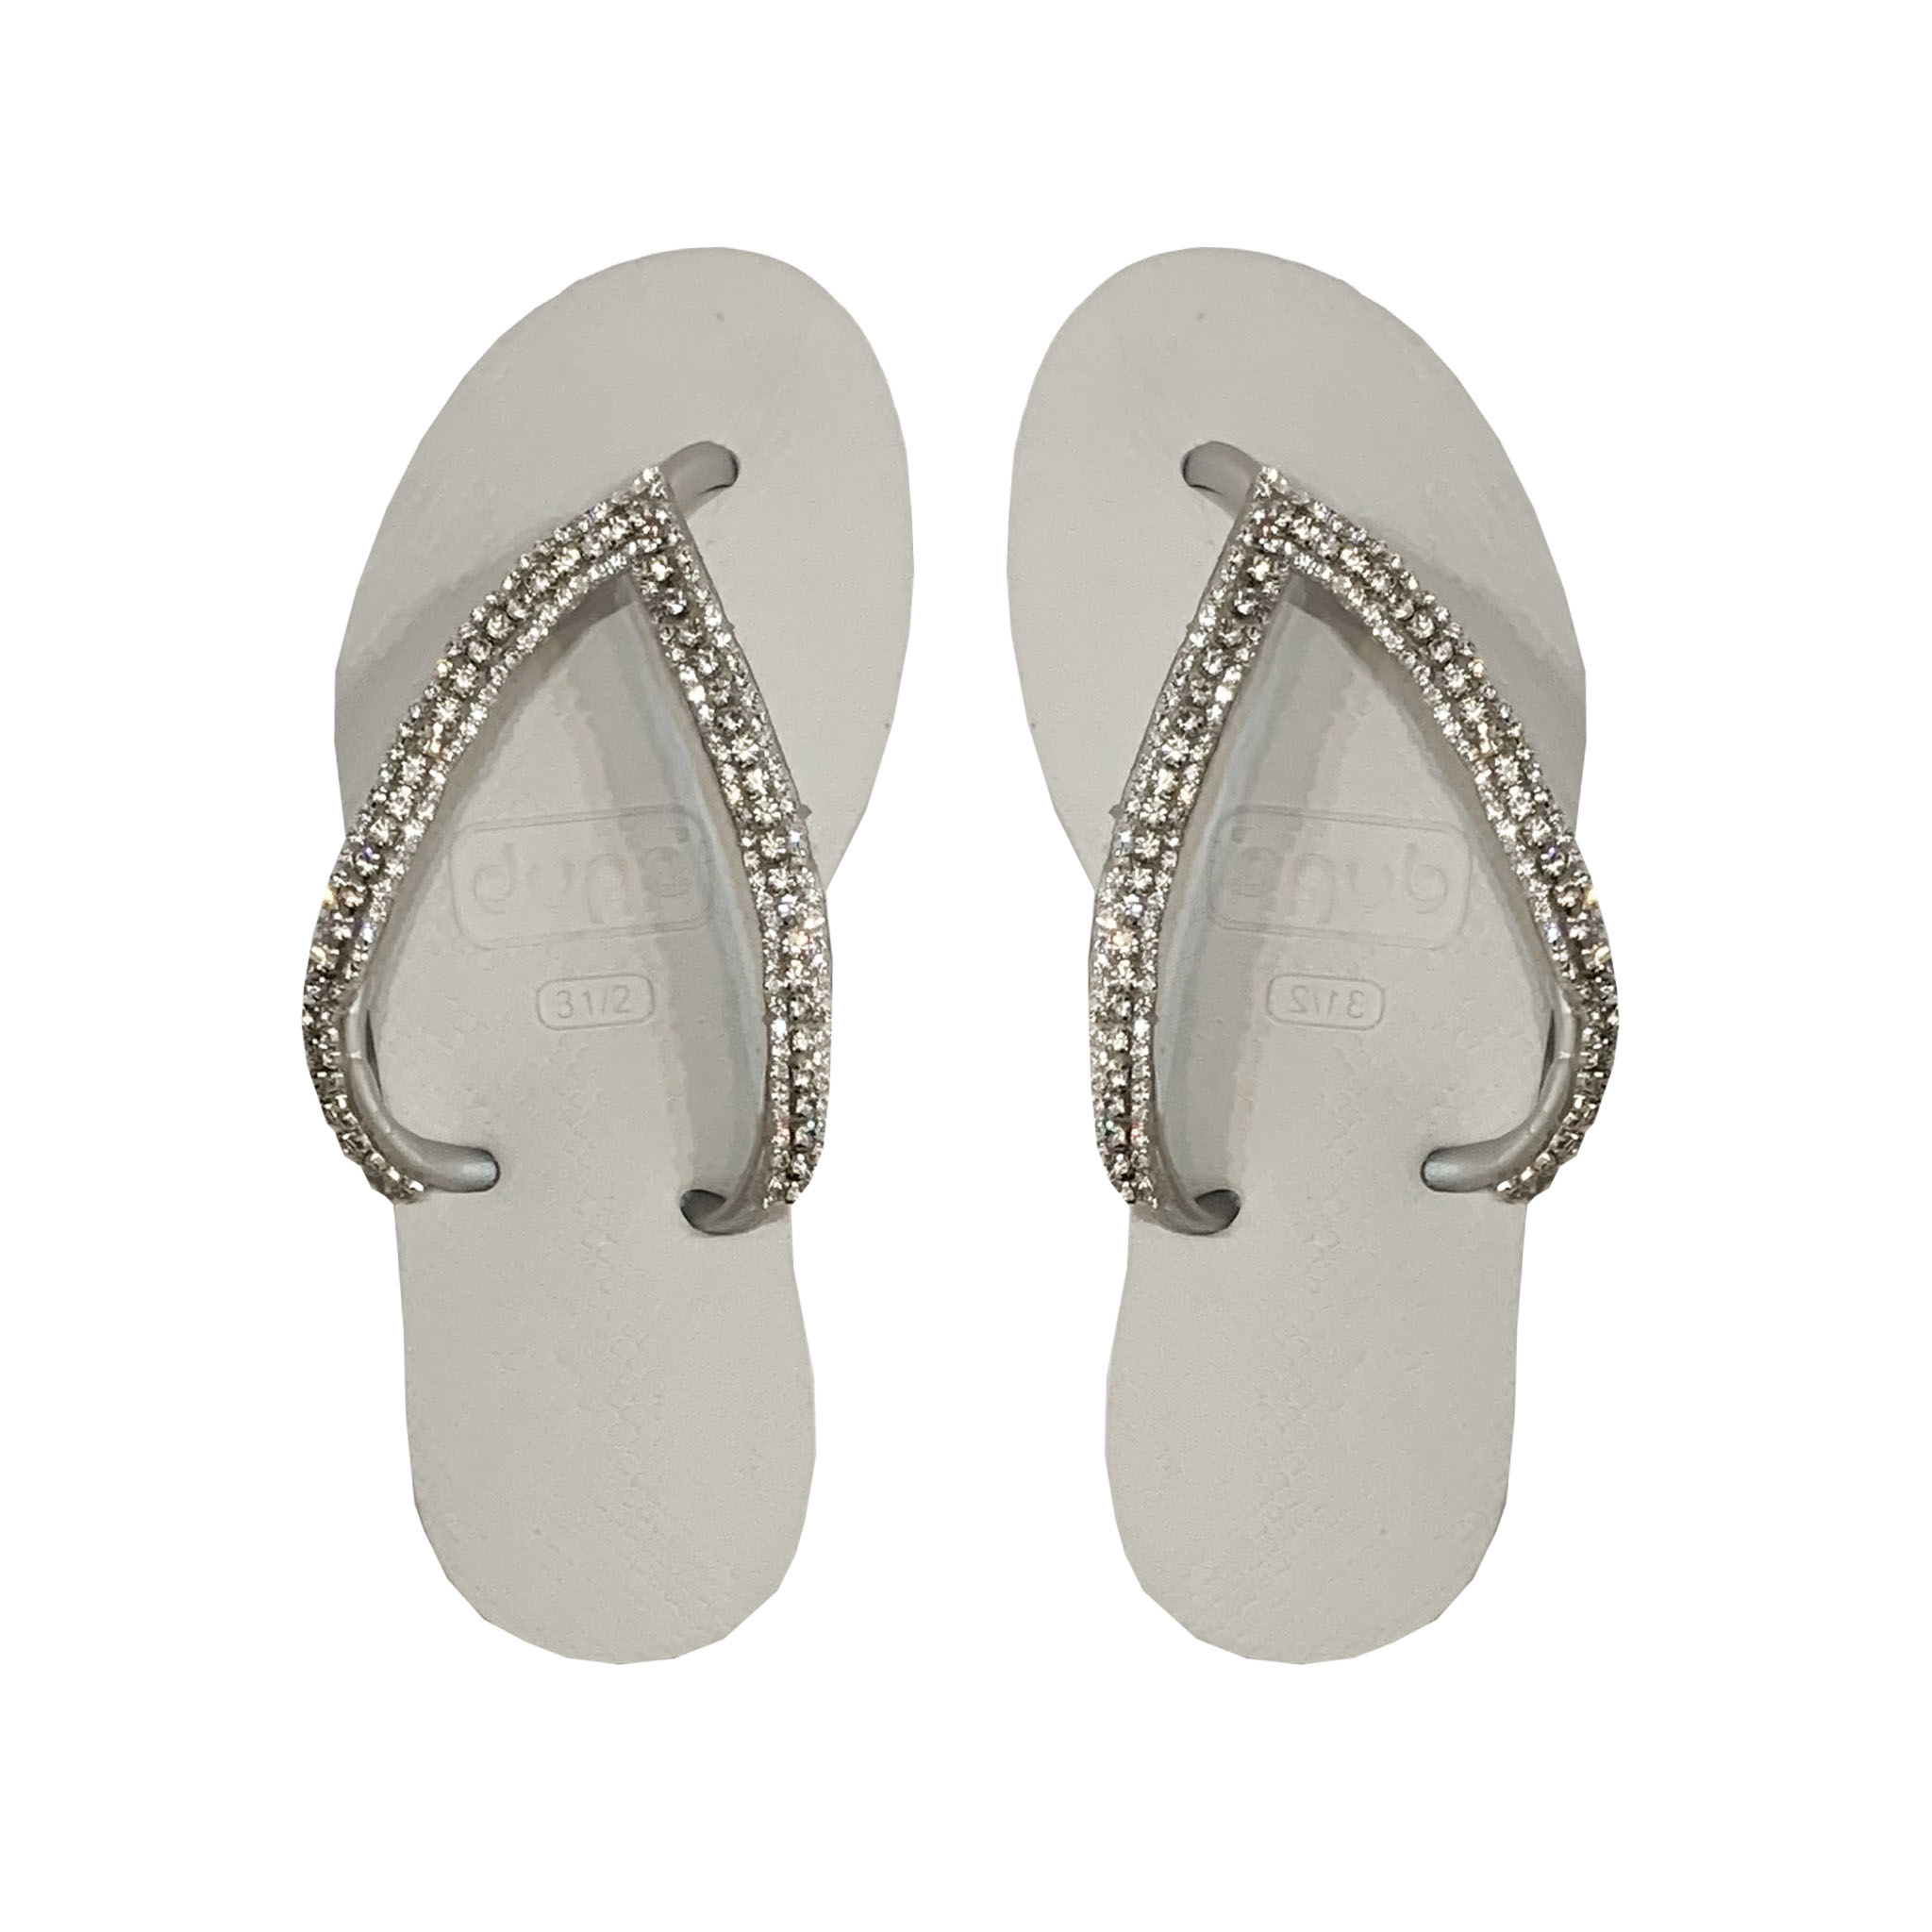 Planet Sea White Crystal Strap Flip Flops